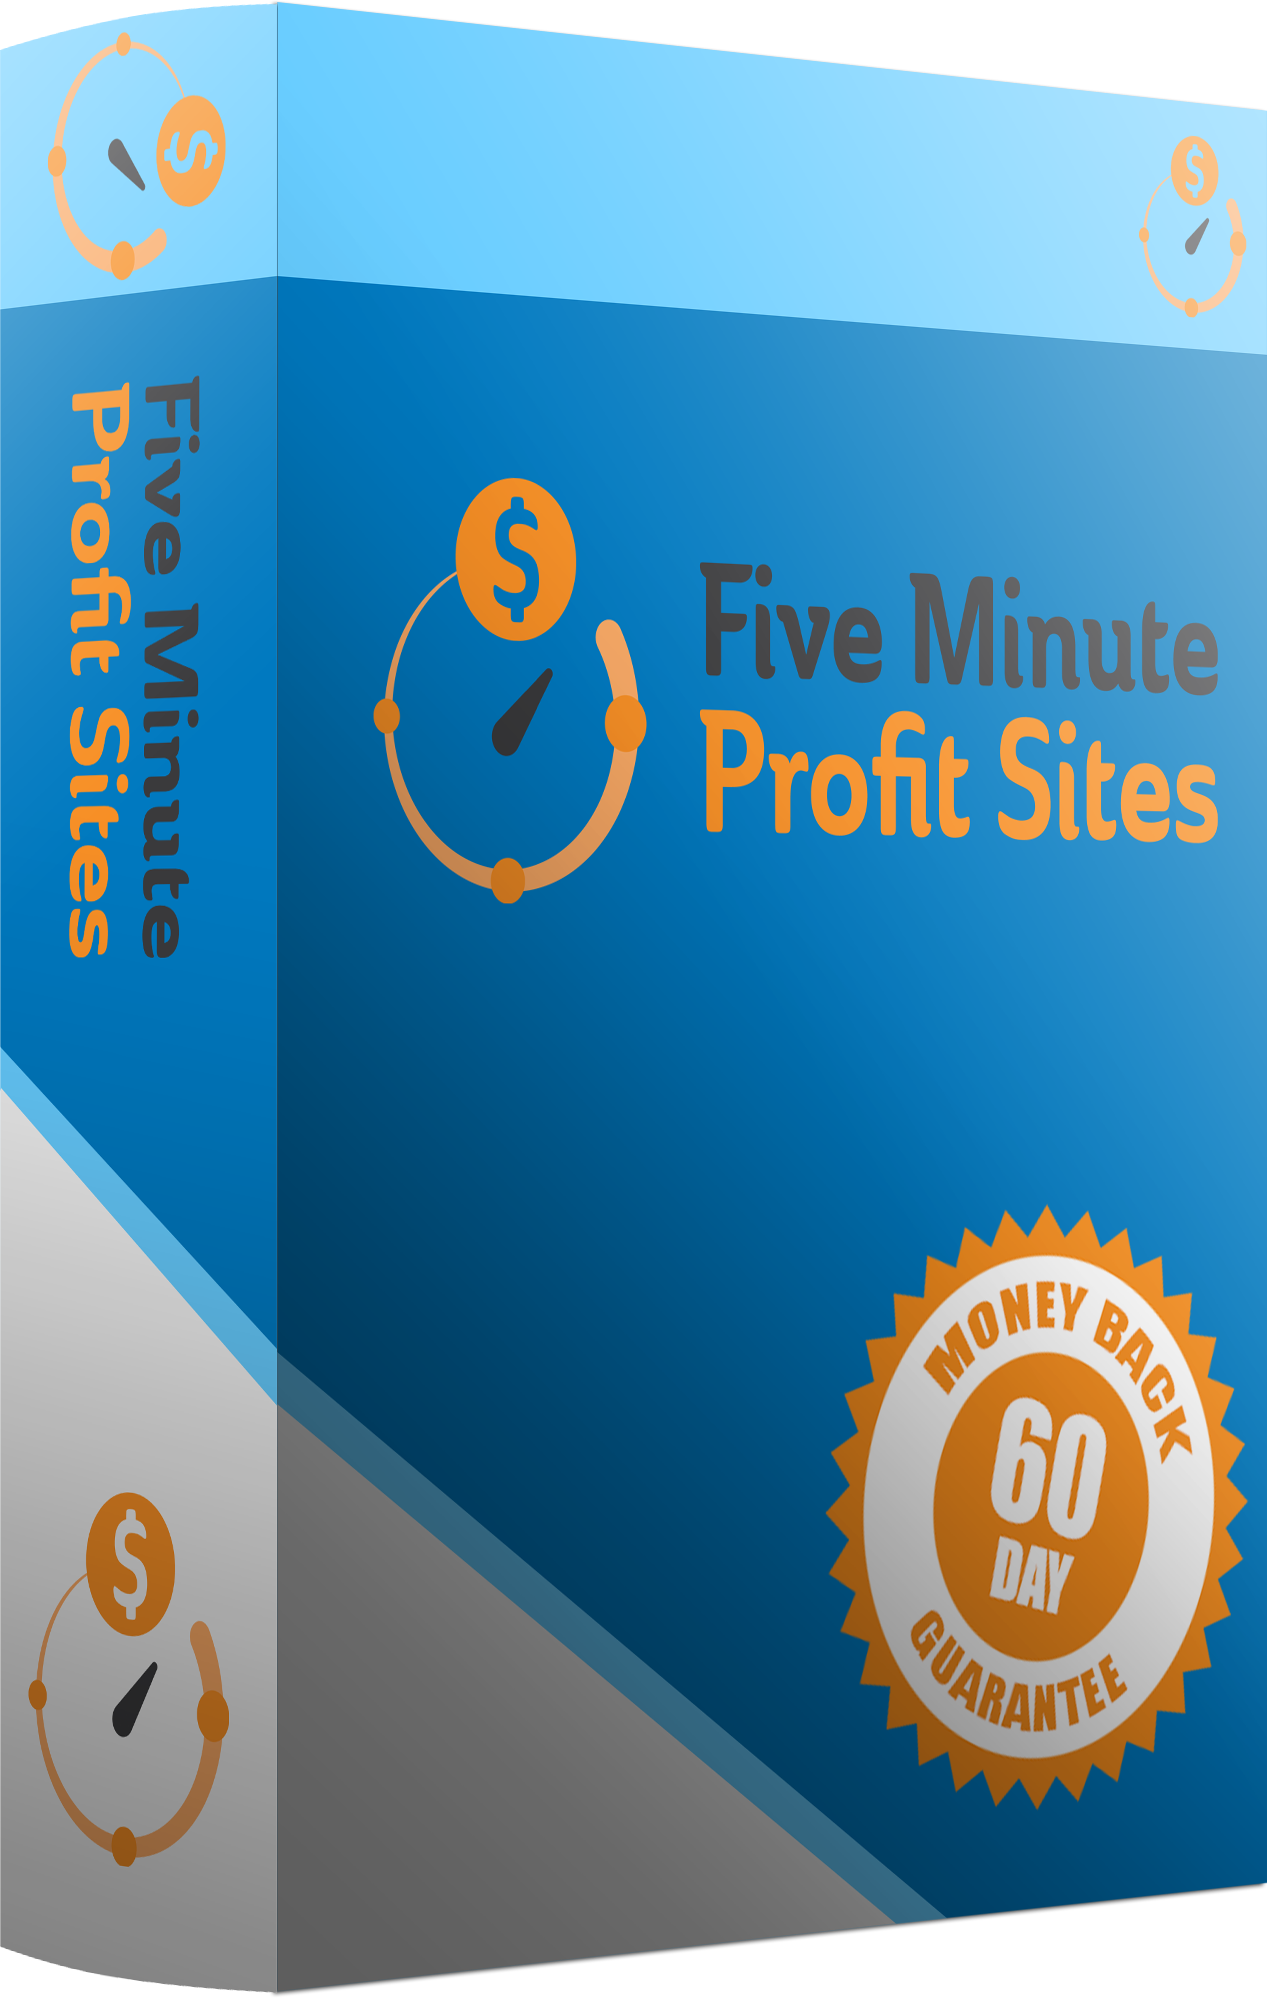 How To Make Money Online with Affiliate Marketing With Five Minute Profit Sites